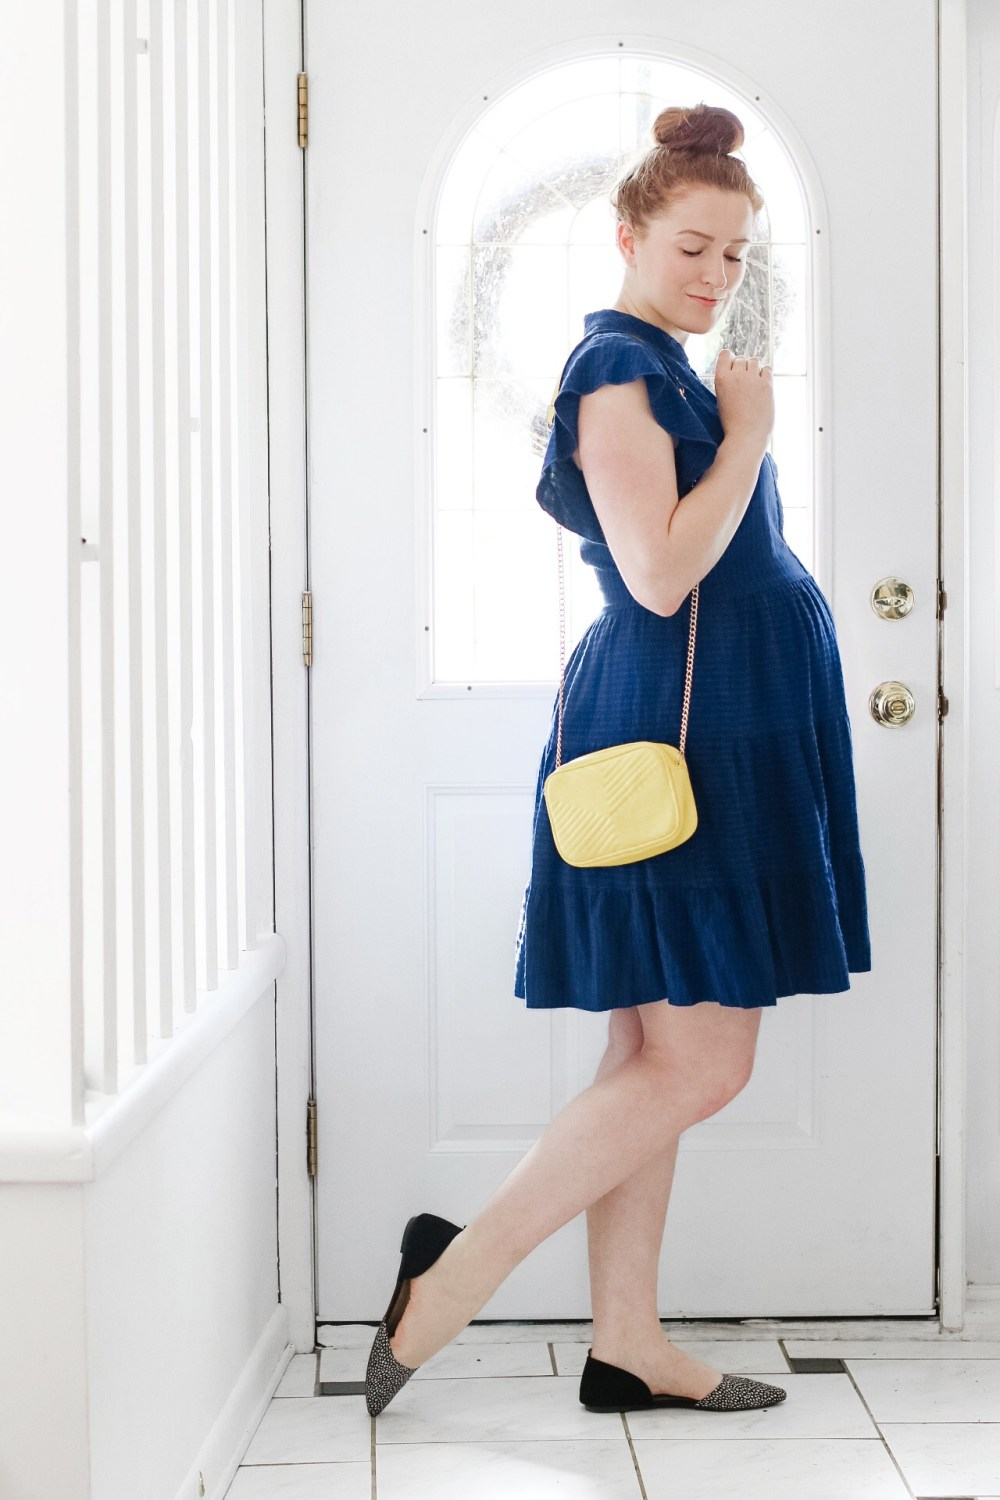 3 Practical Pregnancy Style Tips For Cute Maternity Clotheshoney Betts